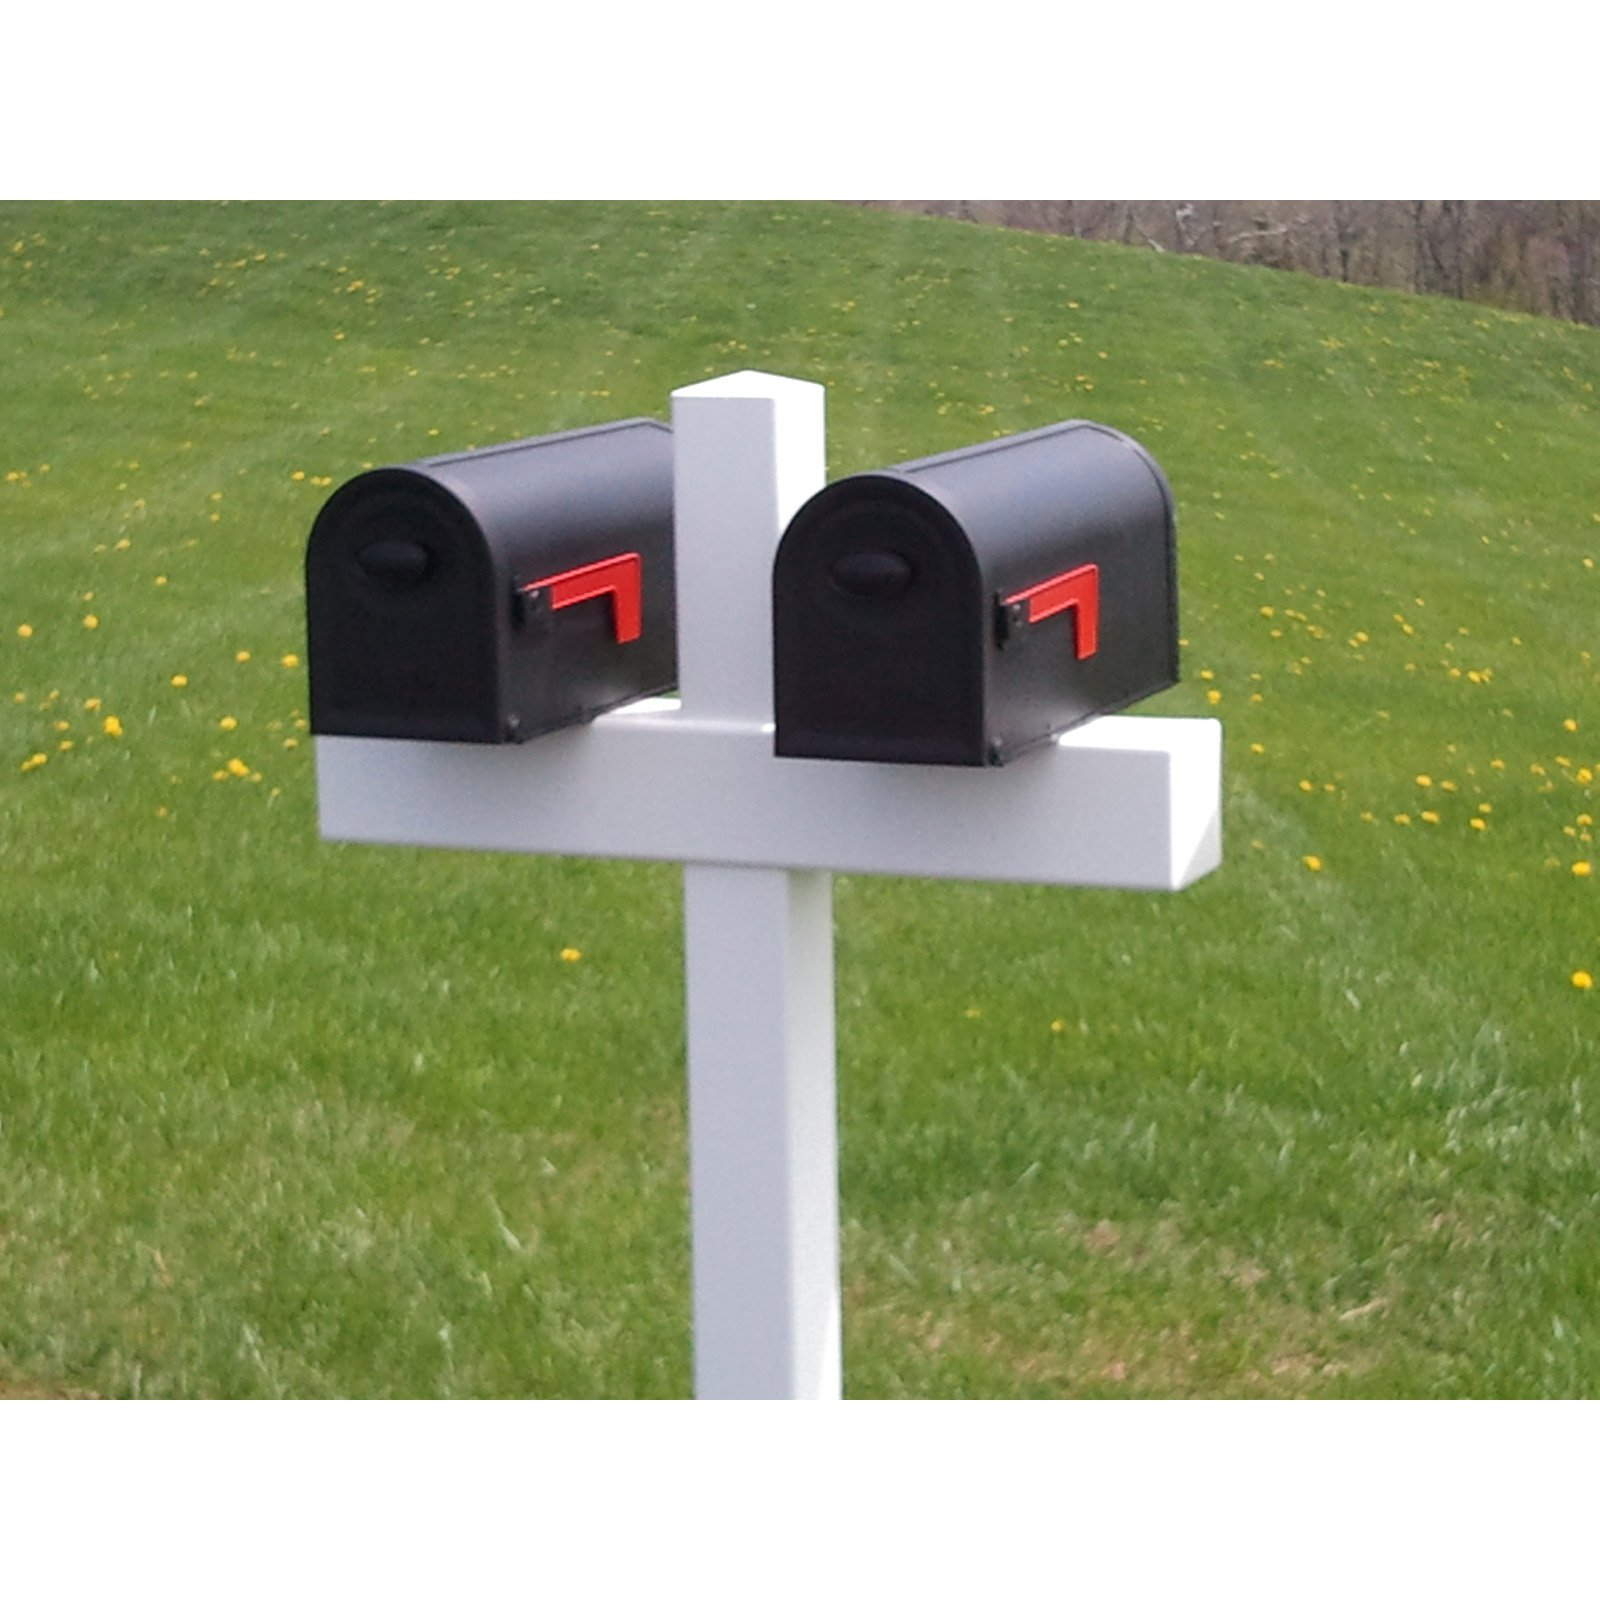 Handy Post Double 54-in x 32-in White Vinyl Mailbox Post Sleeve by Cook Products